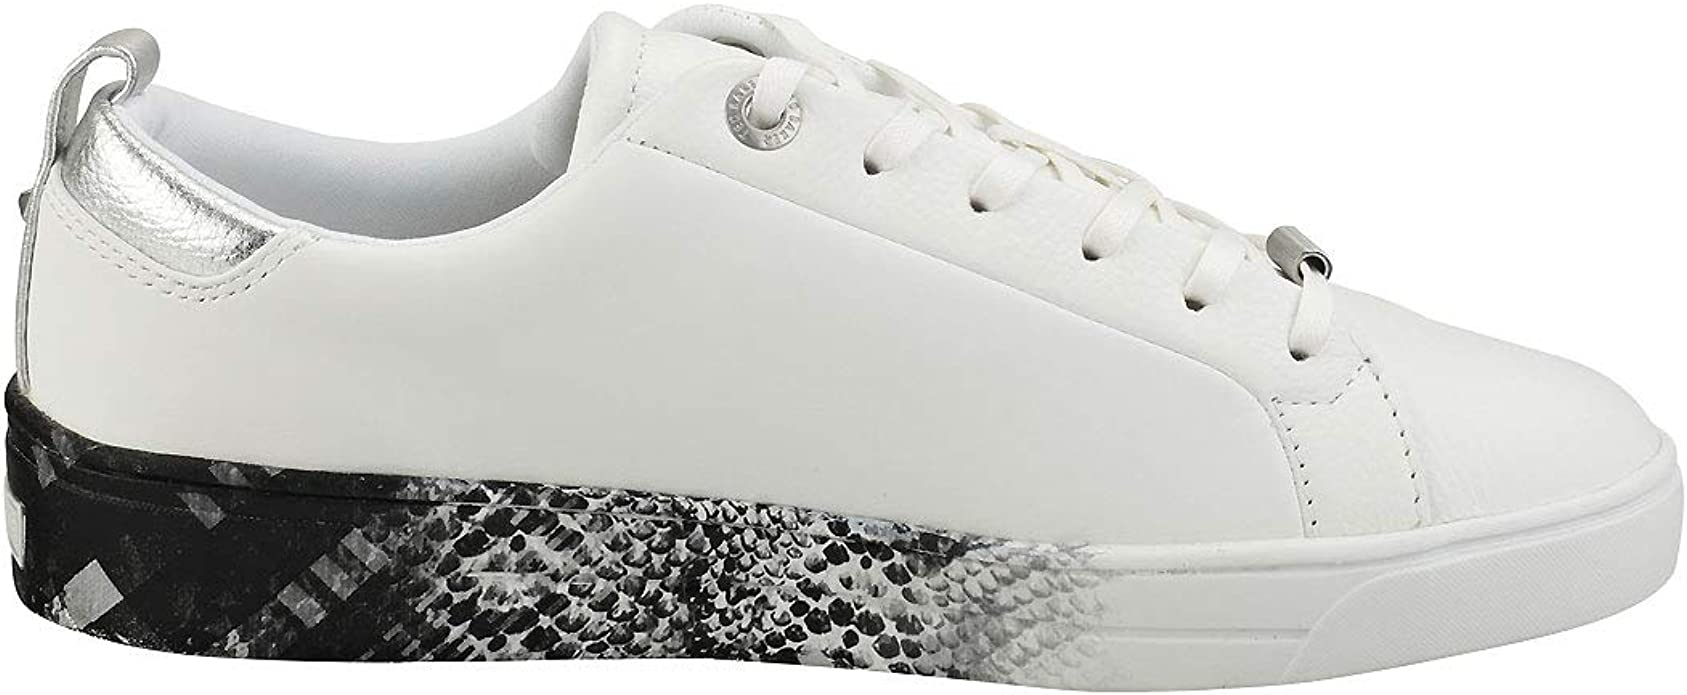 Ted Baker Relina Womens Fashion Trainers